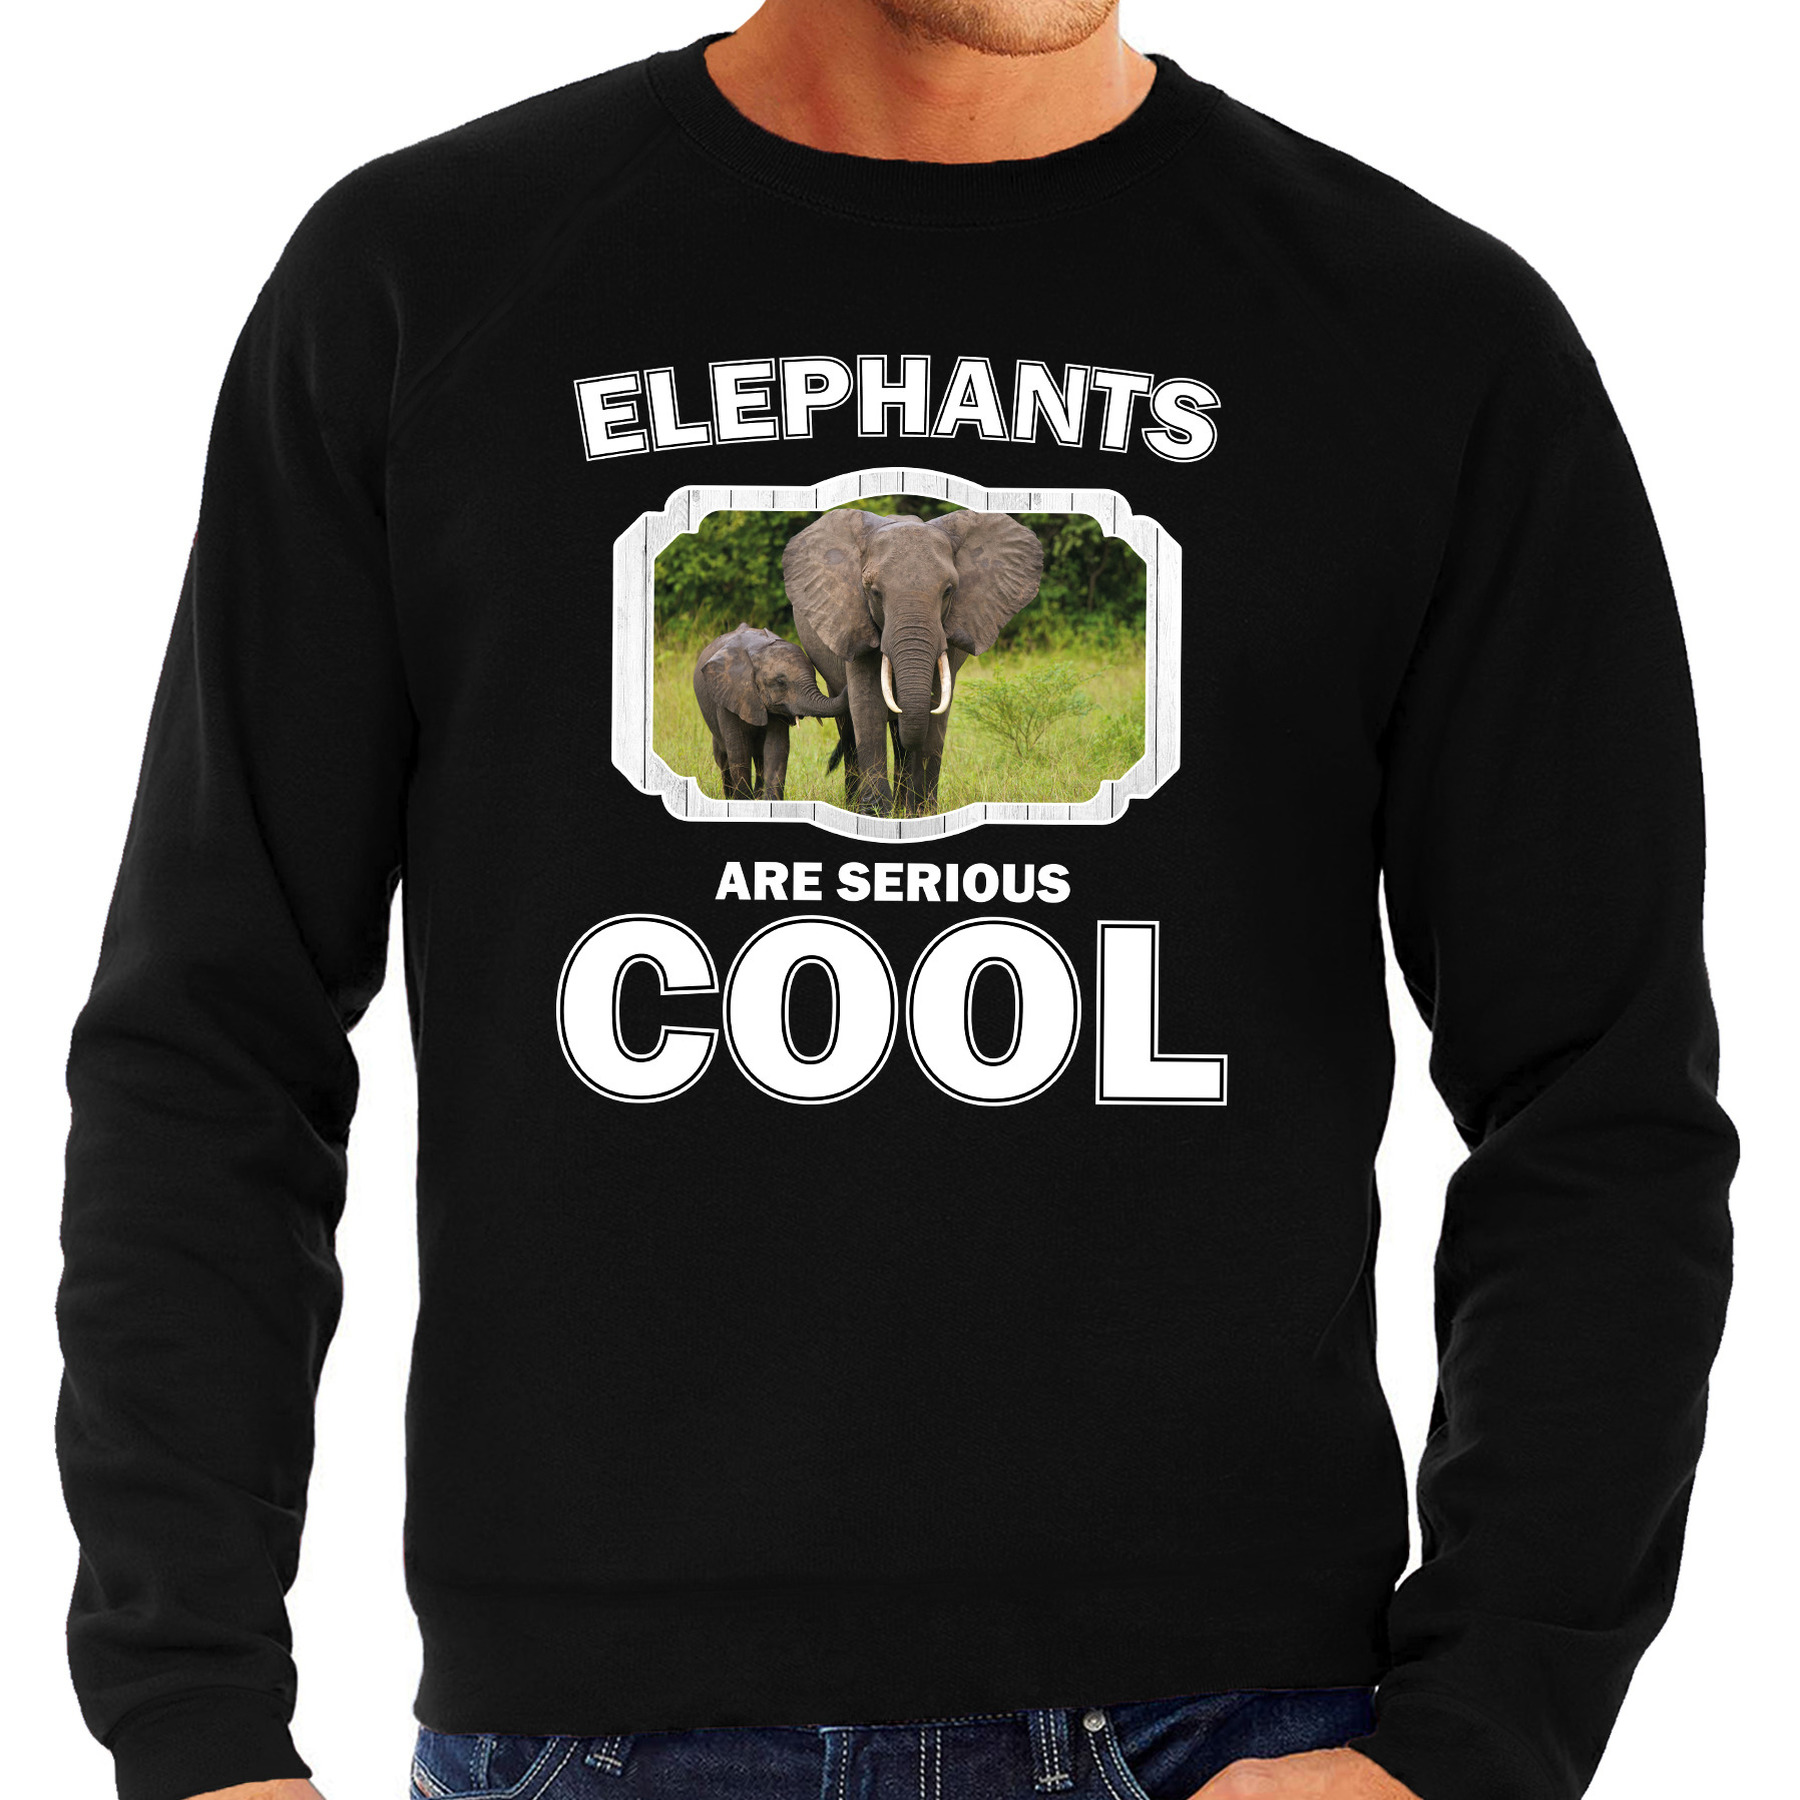 Sweater elephants are serious cool zwart heren - olifanten/ olifant met kalf trui